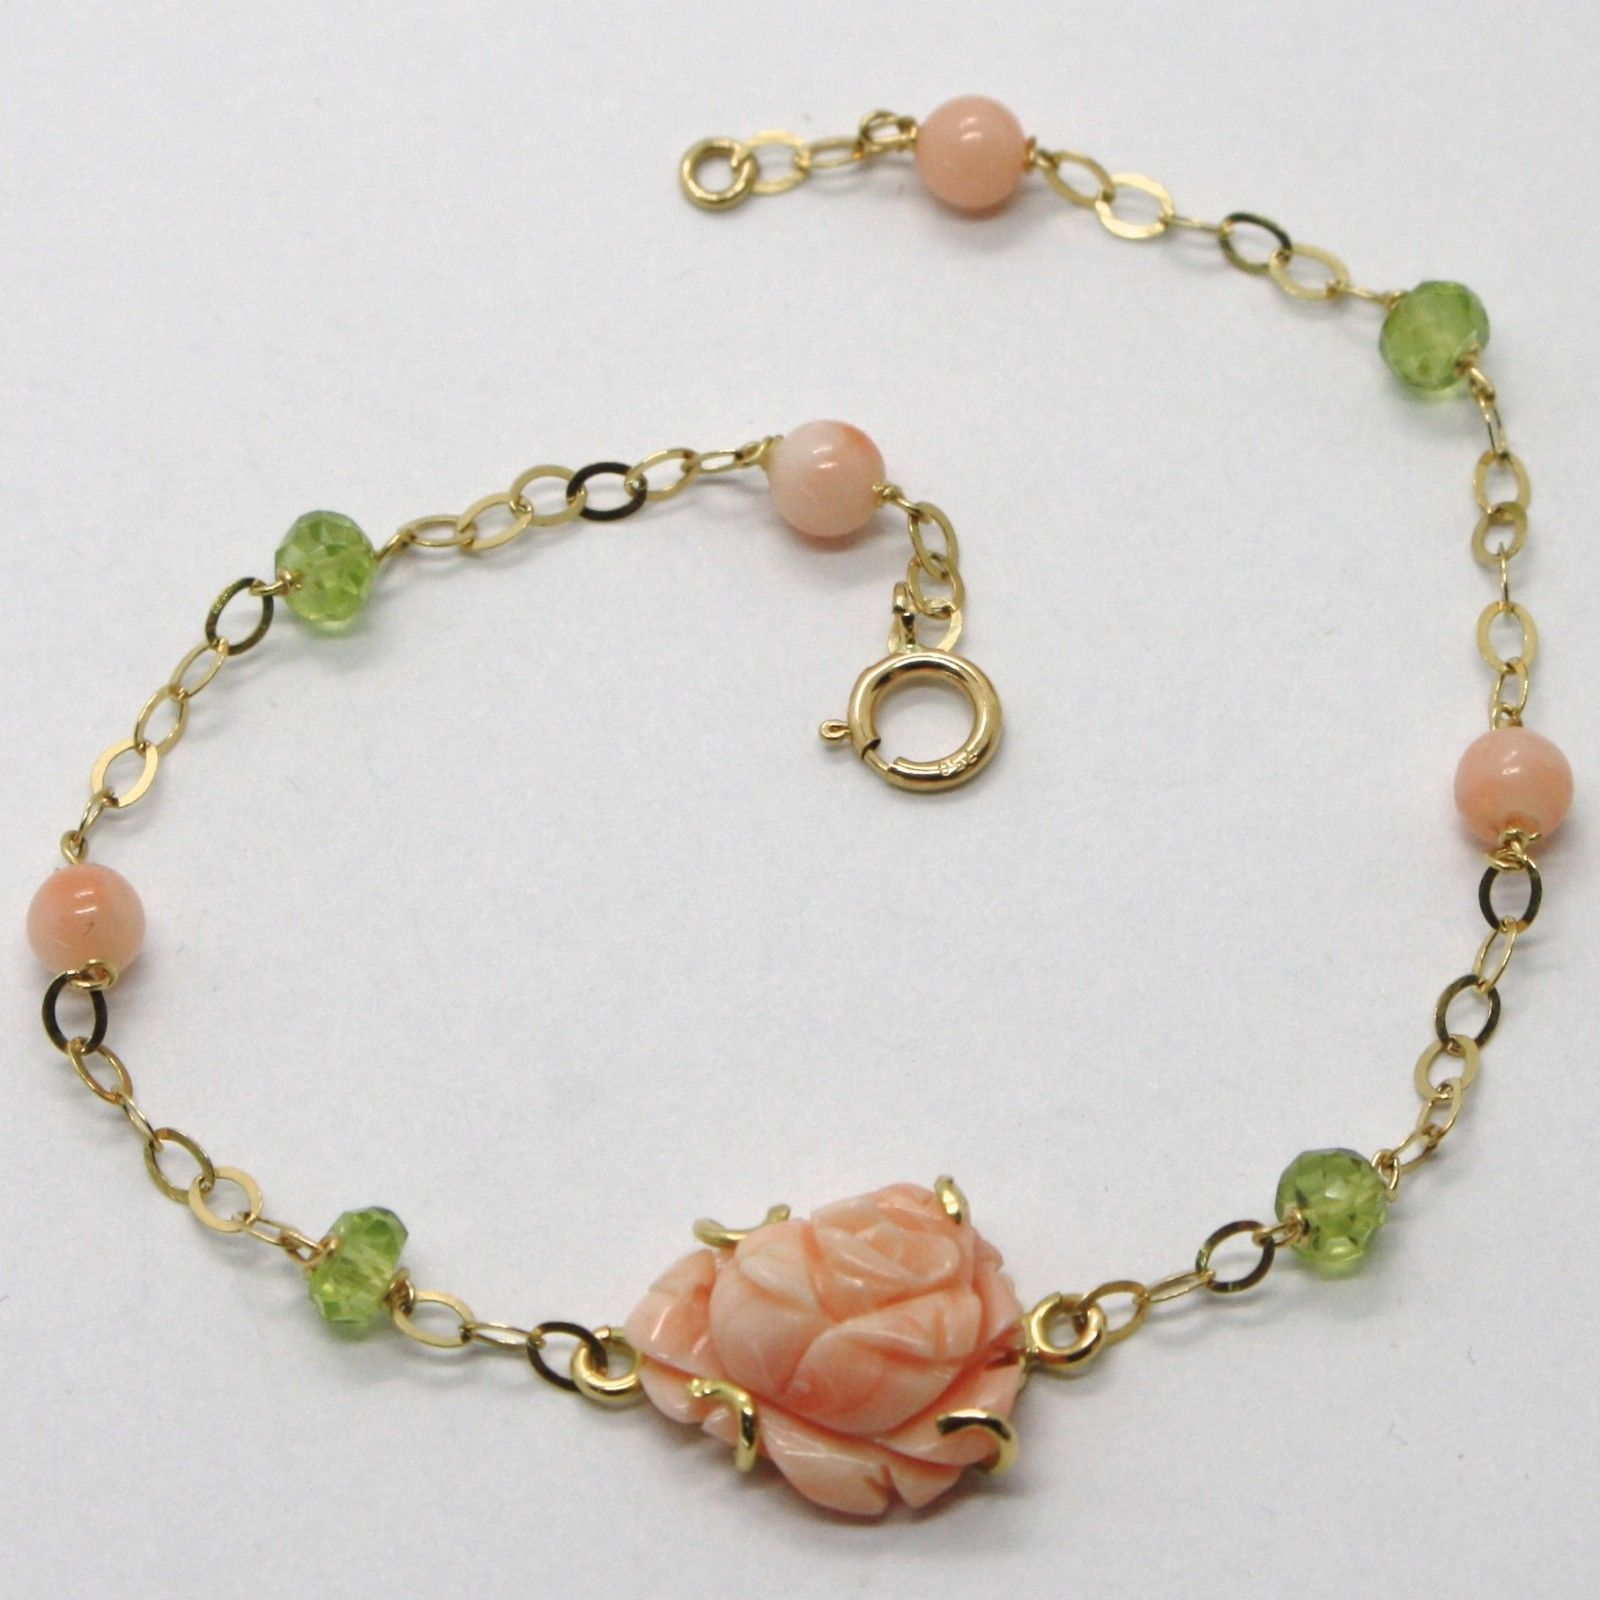 18K YELLOW GOLD BRACELET ROLO LINK, PINK CORAL FLOWER ROSE, PERIDOT, ITALY MADE